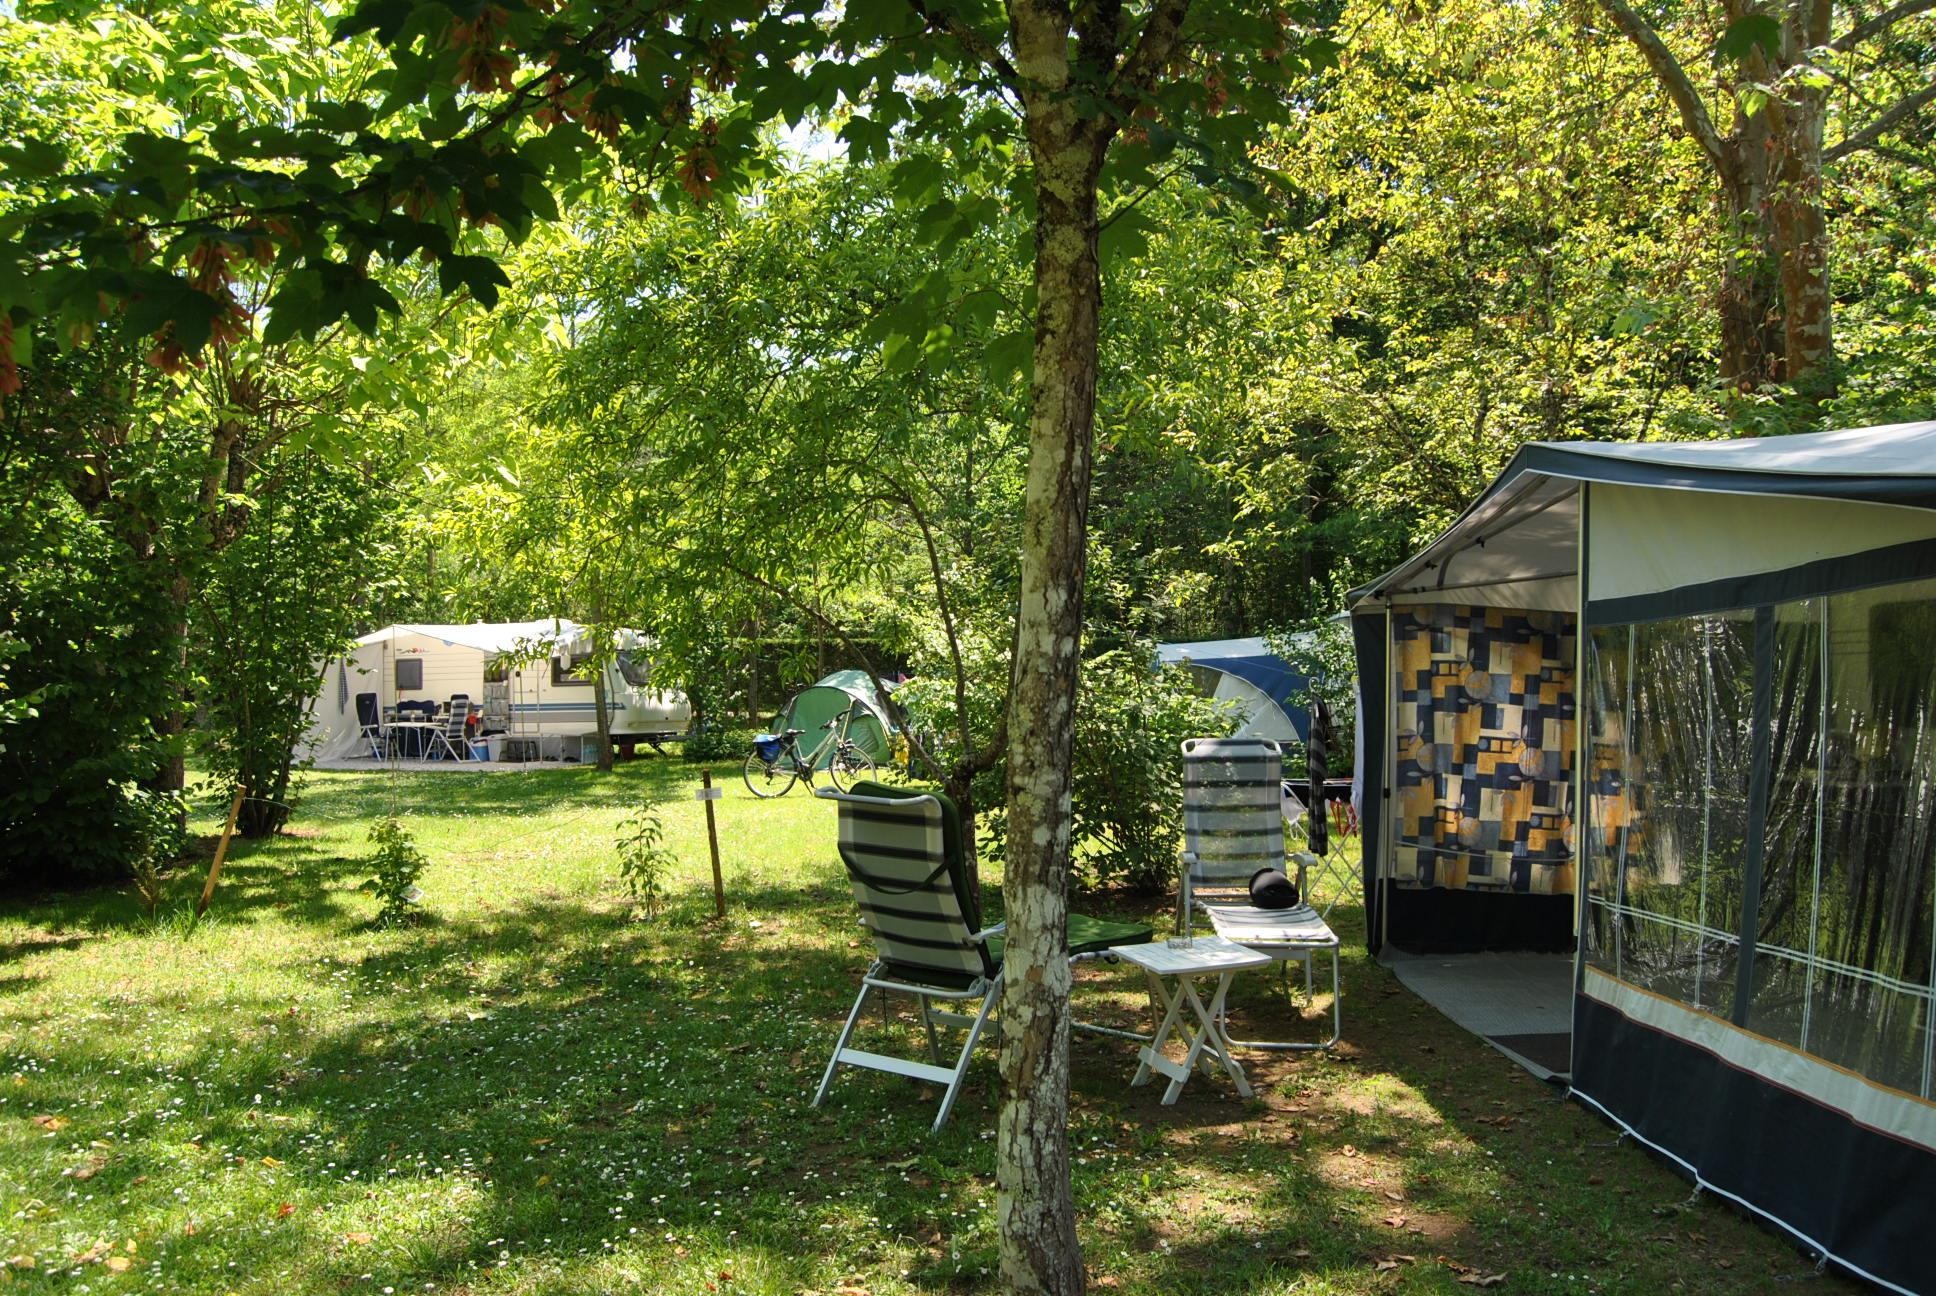 Pitch >120 m² - caravan or tent with car